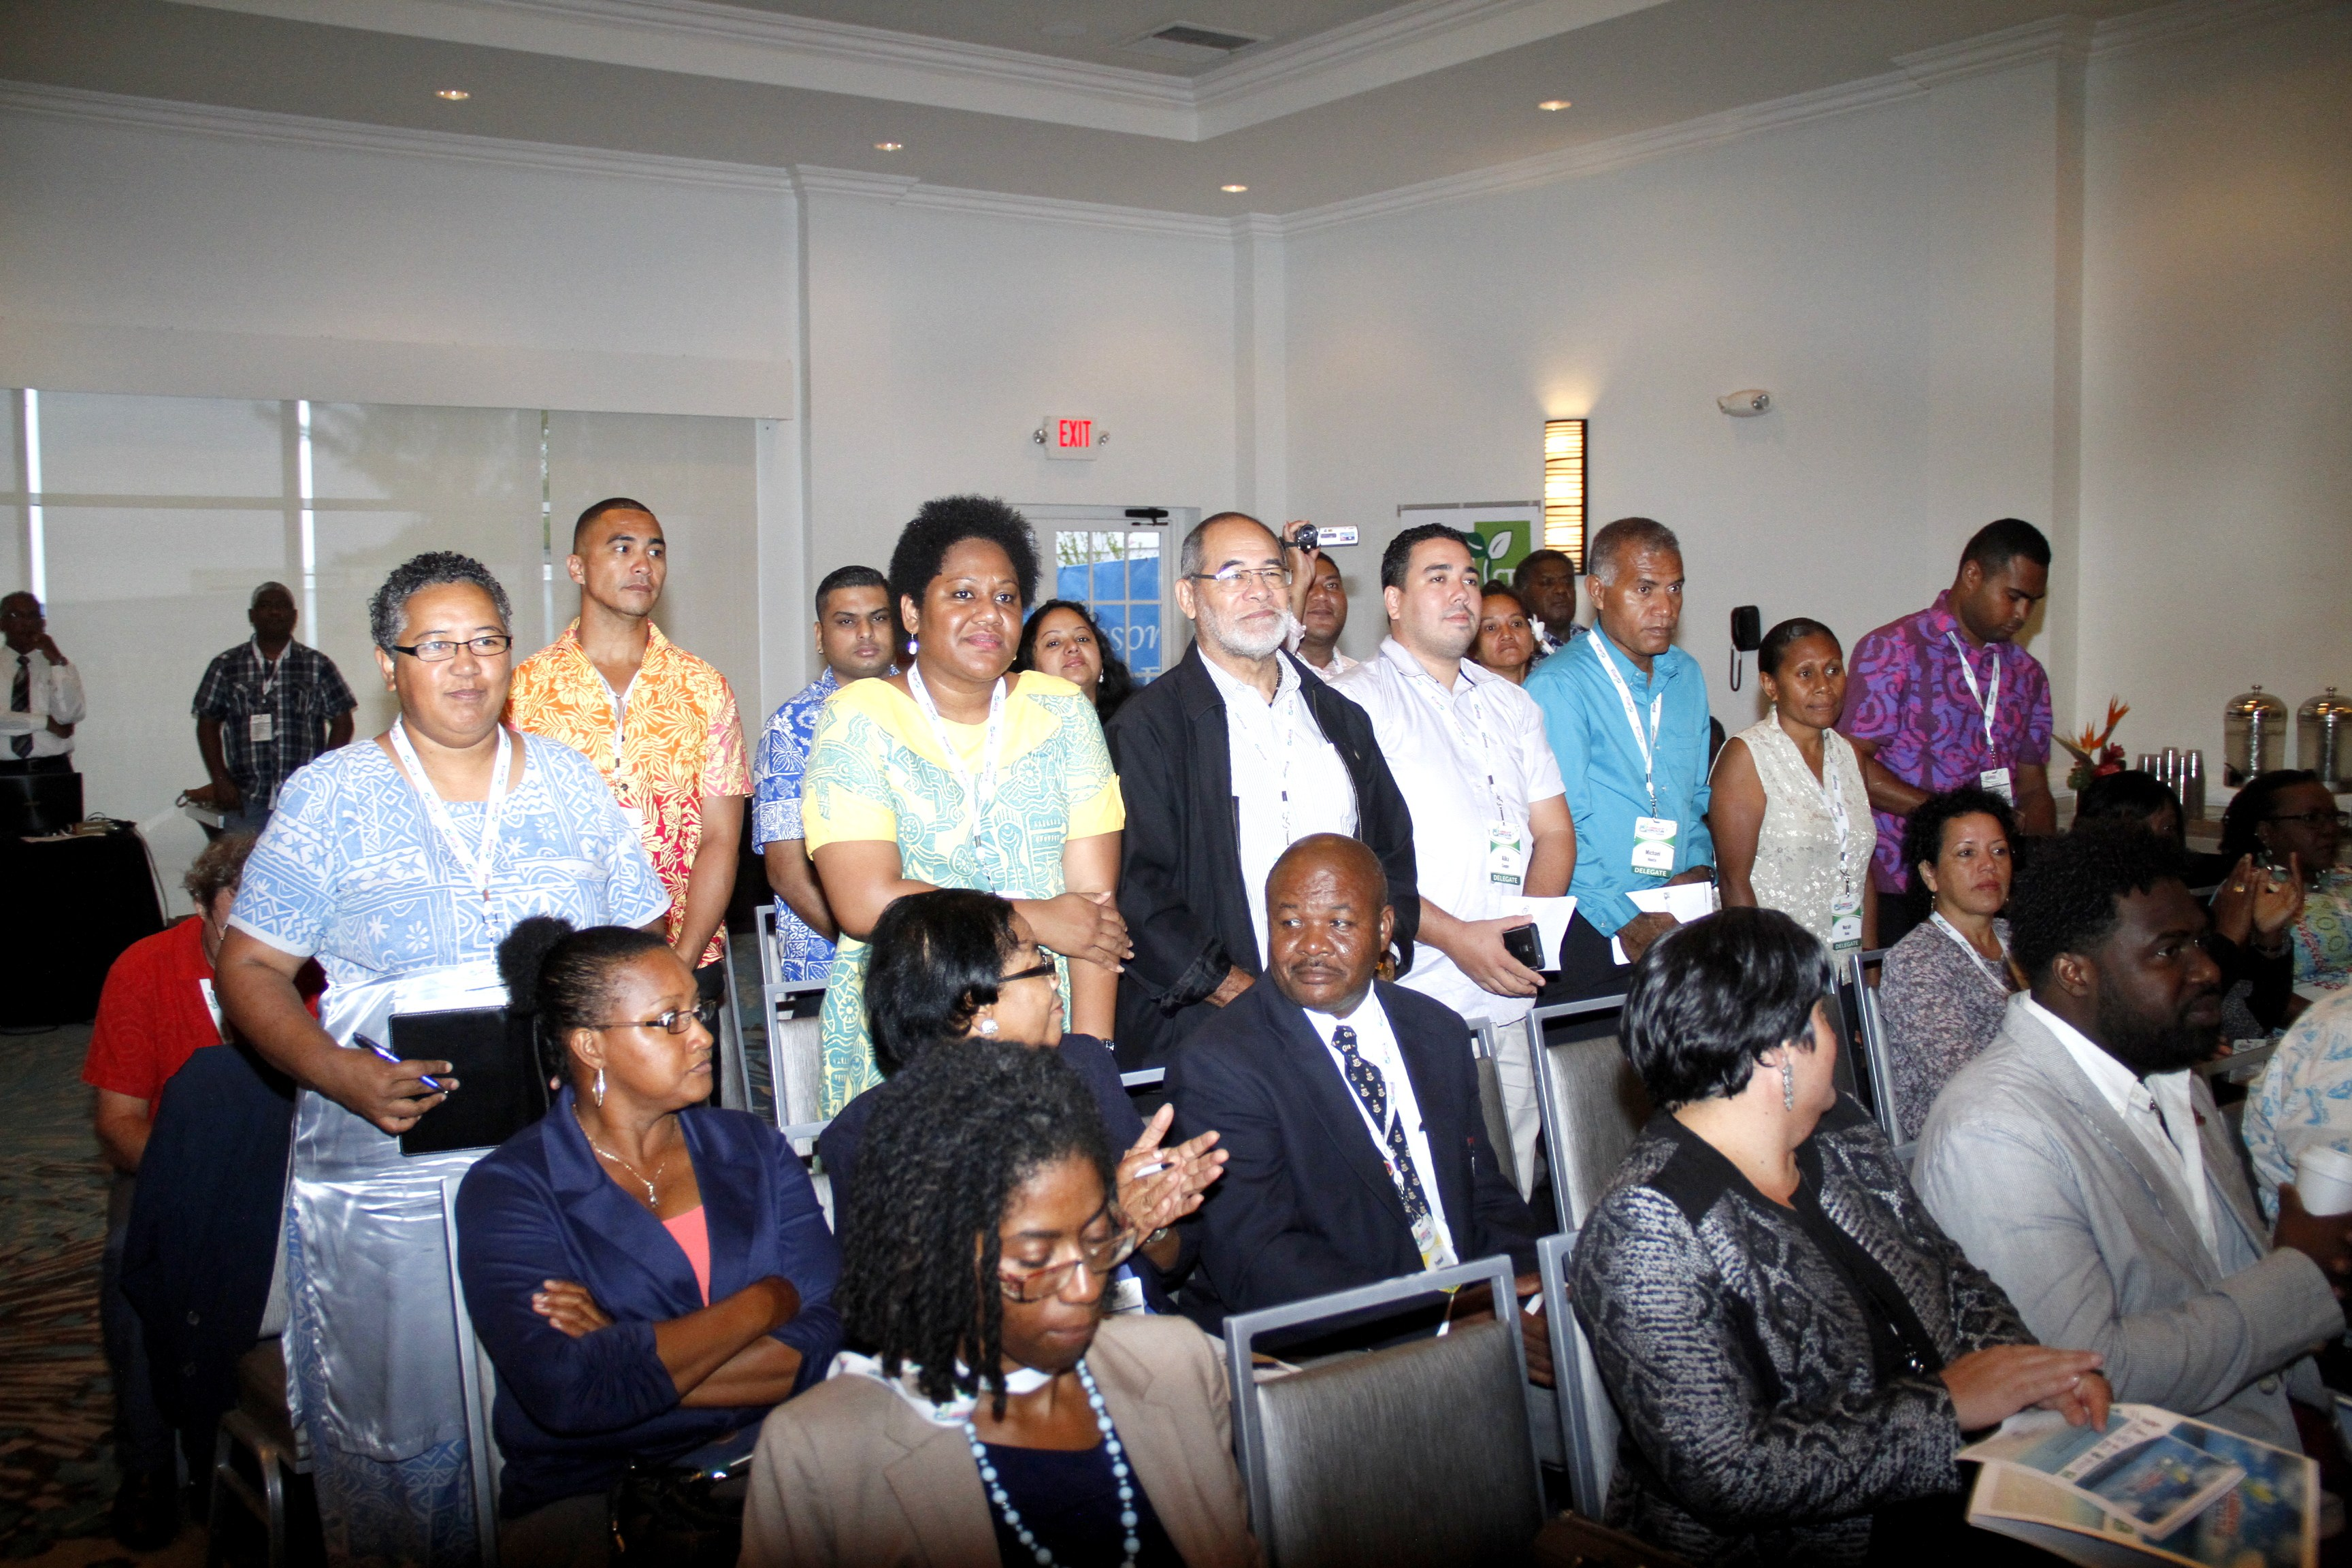 Delegates from the Pacific Islands are acknowledged during the opening ceremony of Caribbean Week of Agriculture in Grand Cayman on Wednesday, Oct. 26. (Photo by Kenton Chance)